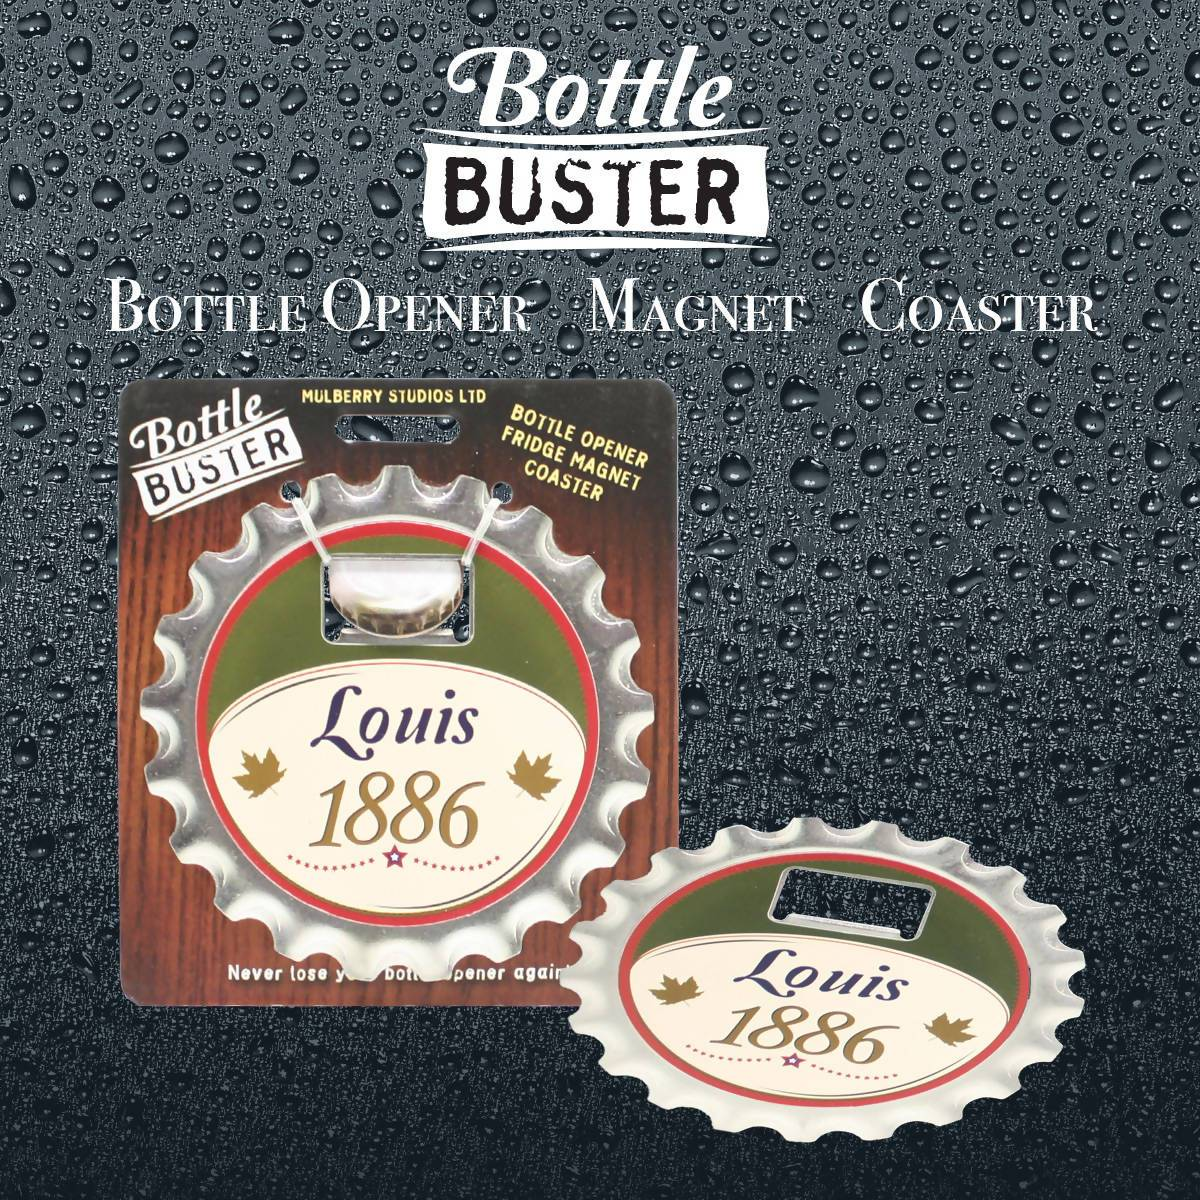 BOTTLE BUSTER - Best Bottle Opener : Louis - Bottle Openers - La Belle Collection - Naiise